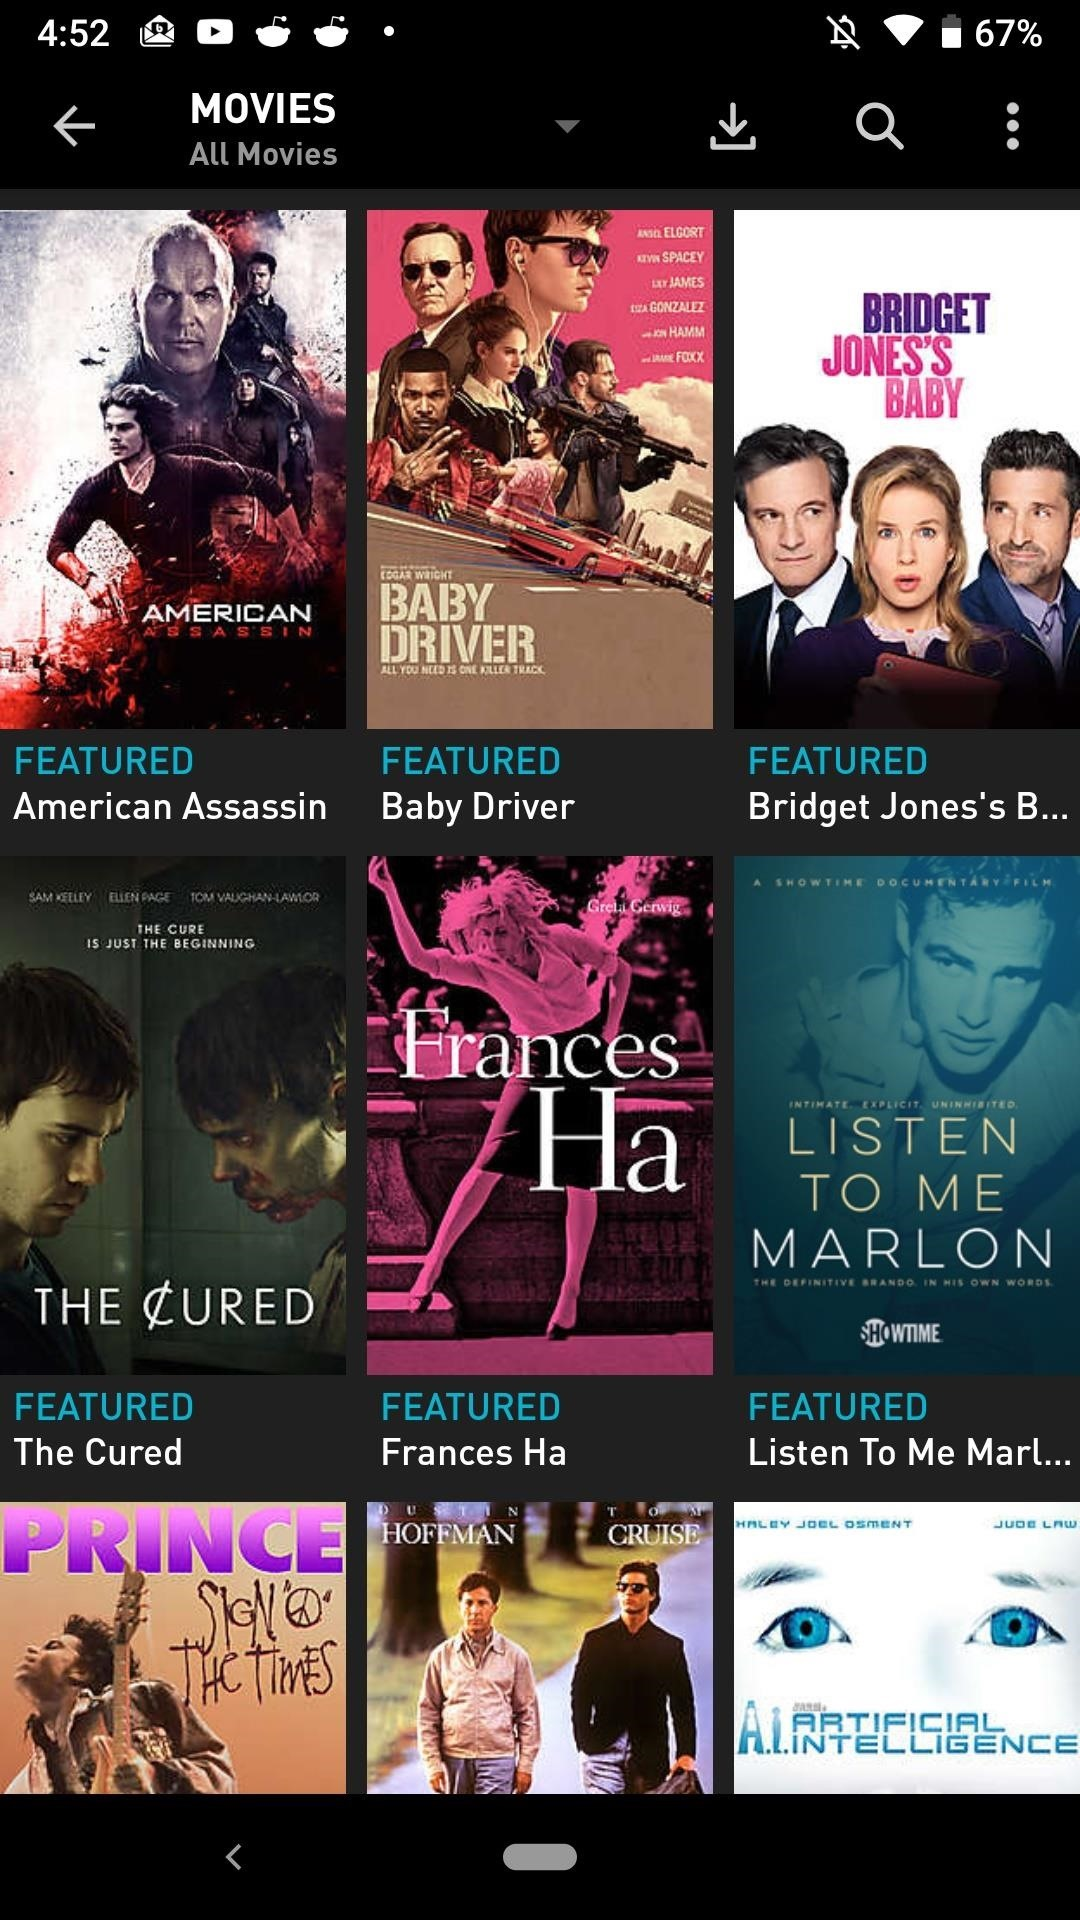 The 5 Best Apps for Streaming Movies on Your Phone